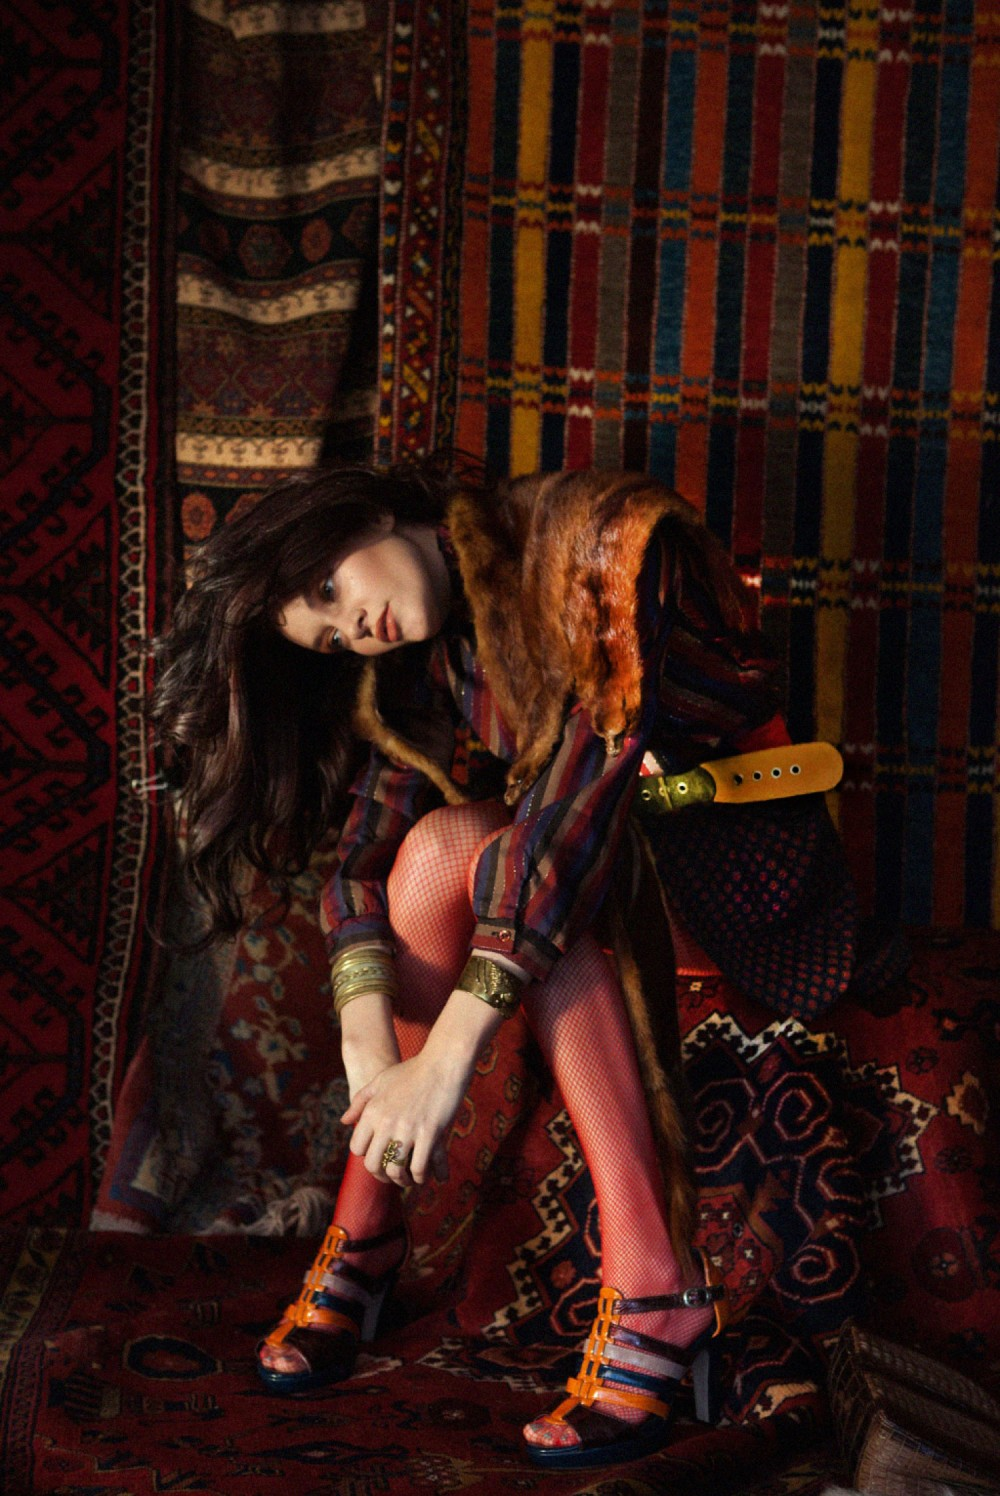 bohemian fashion blogger photographer heather van gaale in vintage editorial with model amber flowers